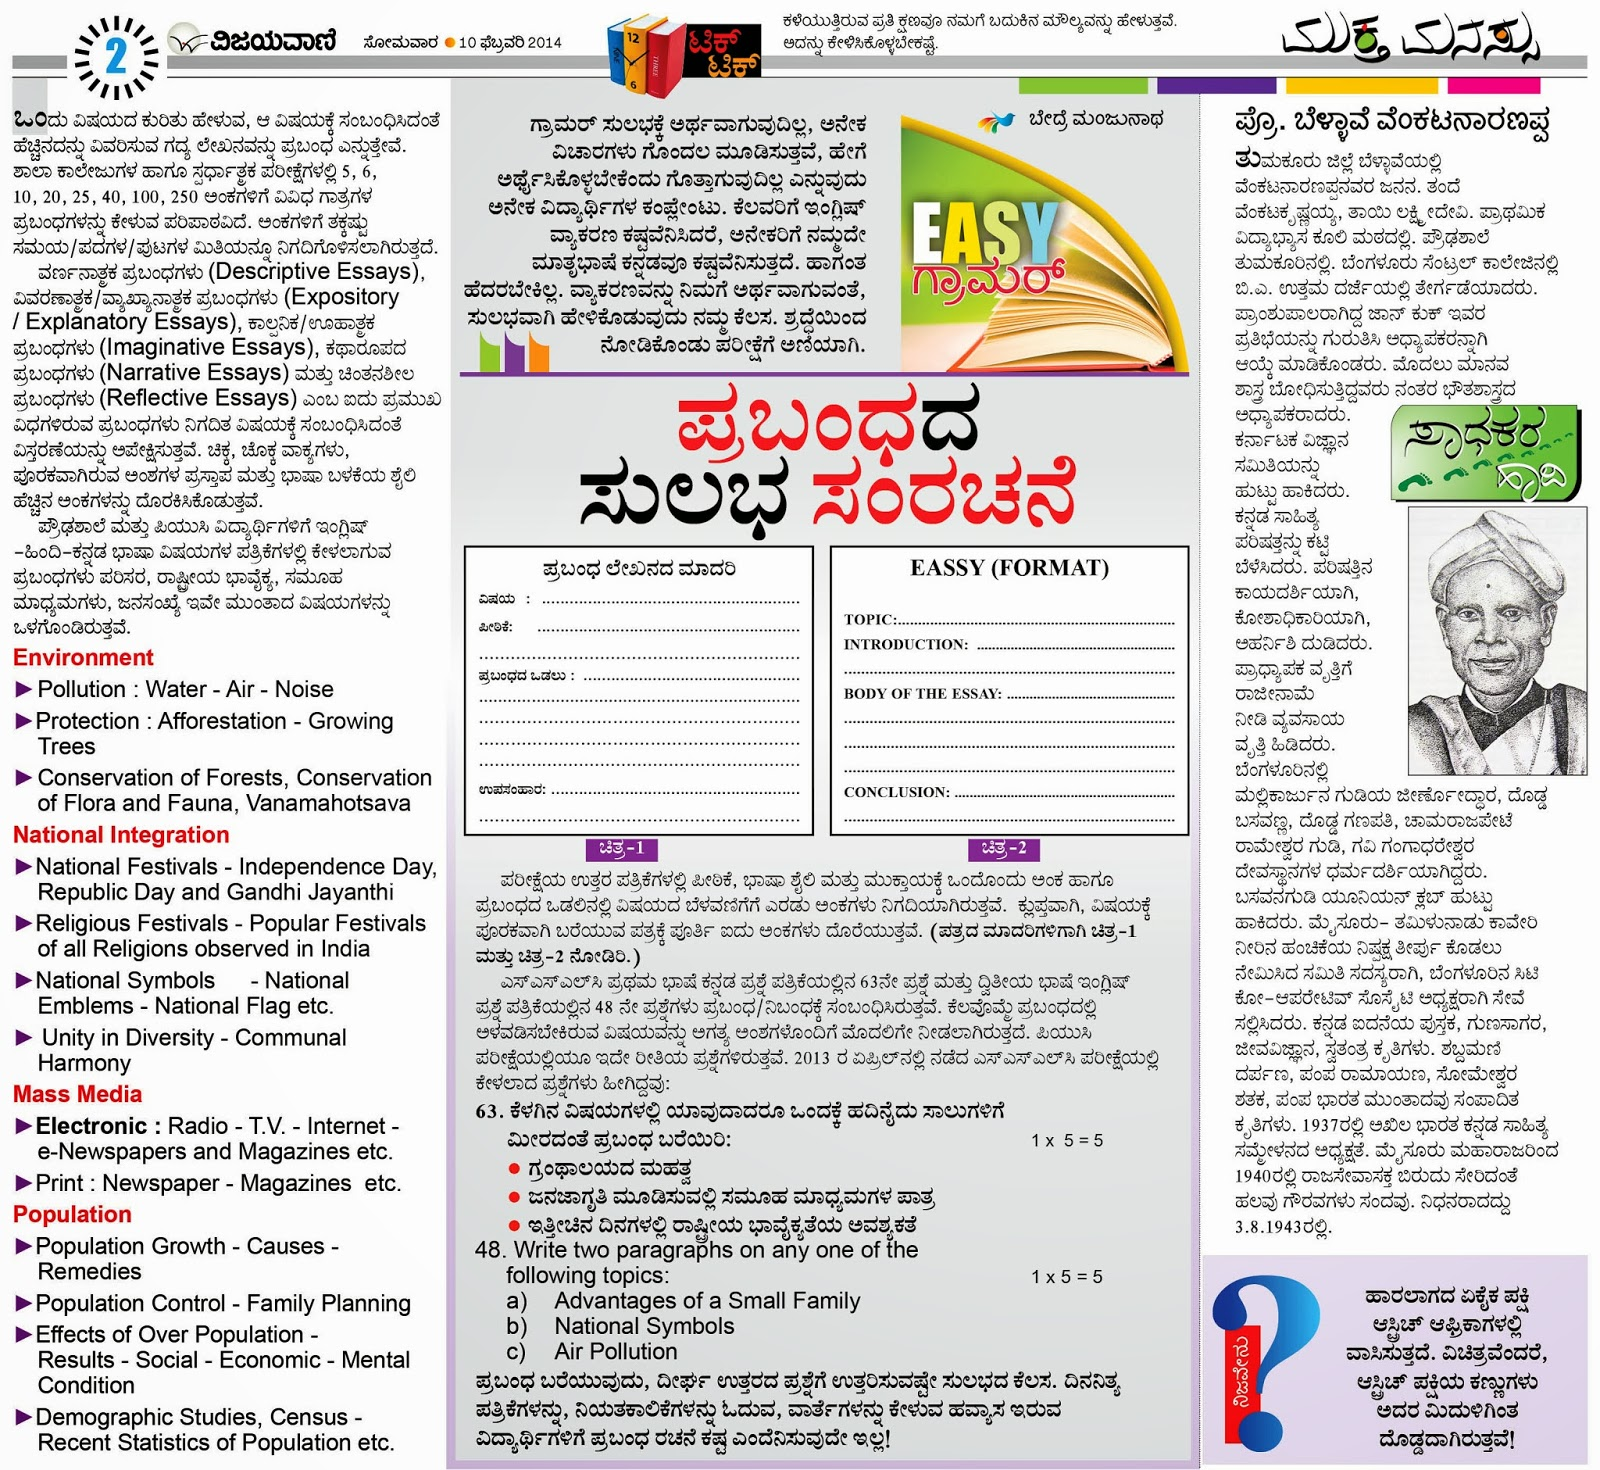 imaginative essays illustrative essay examples illustrations  essay writing for sslc and puc essay writing for sslc and puc students vijayavani student mitra